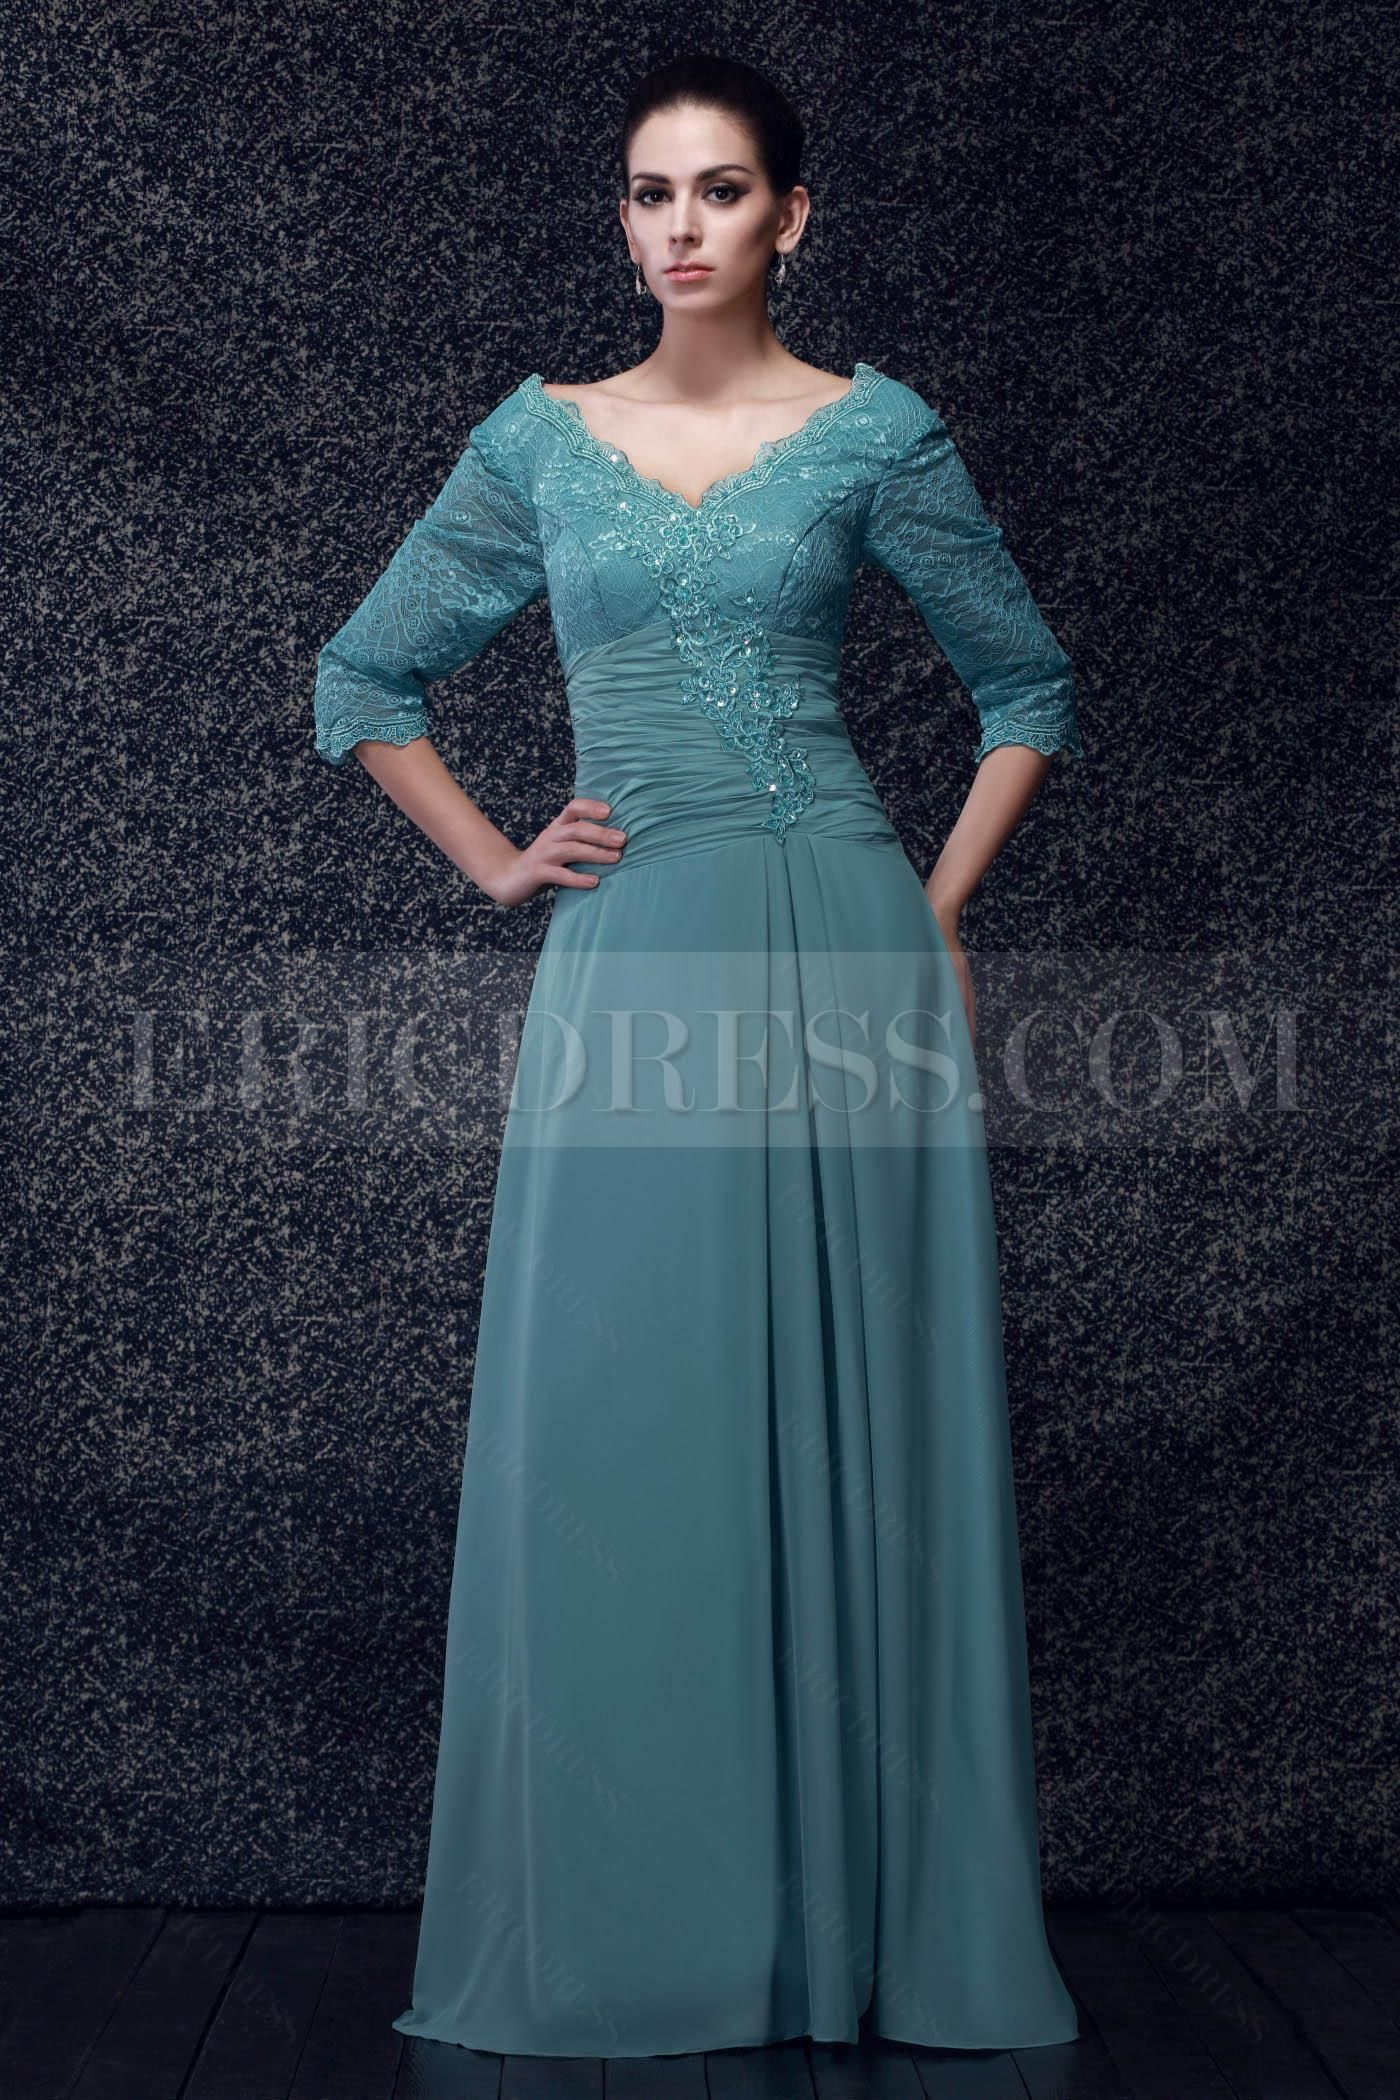 Best affordable wedding dress shops london  lace mother dress icdress  Mother of the Groom